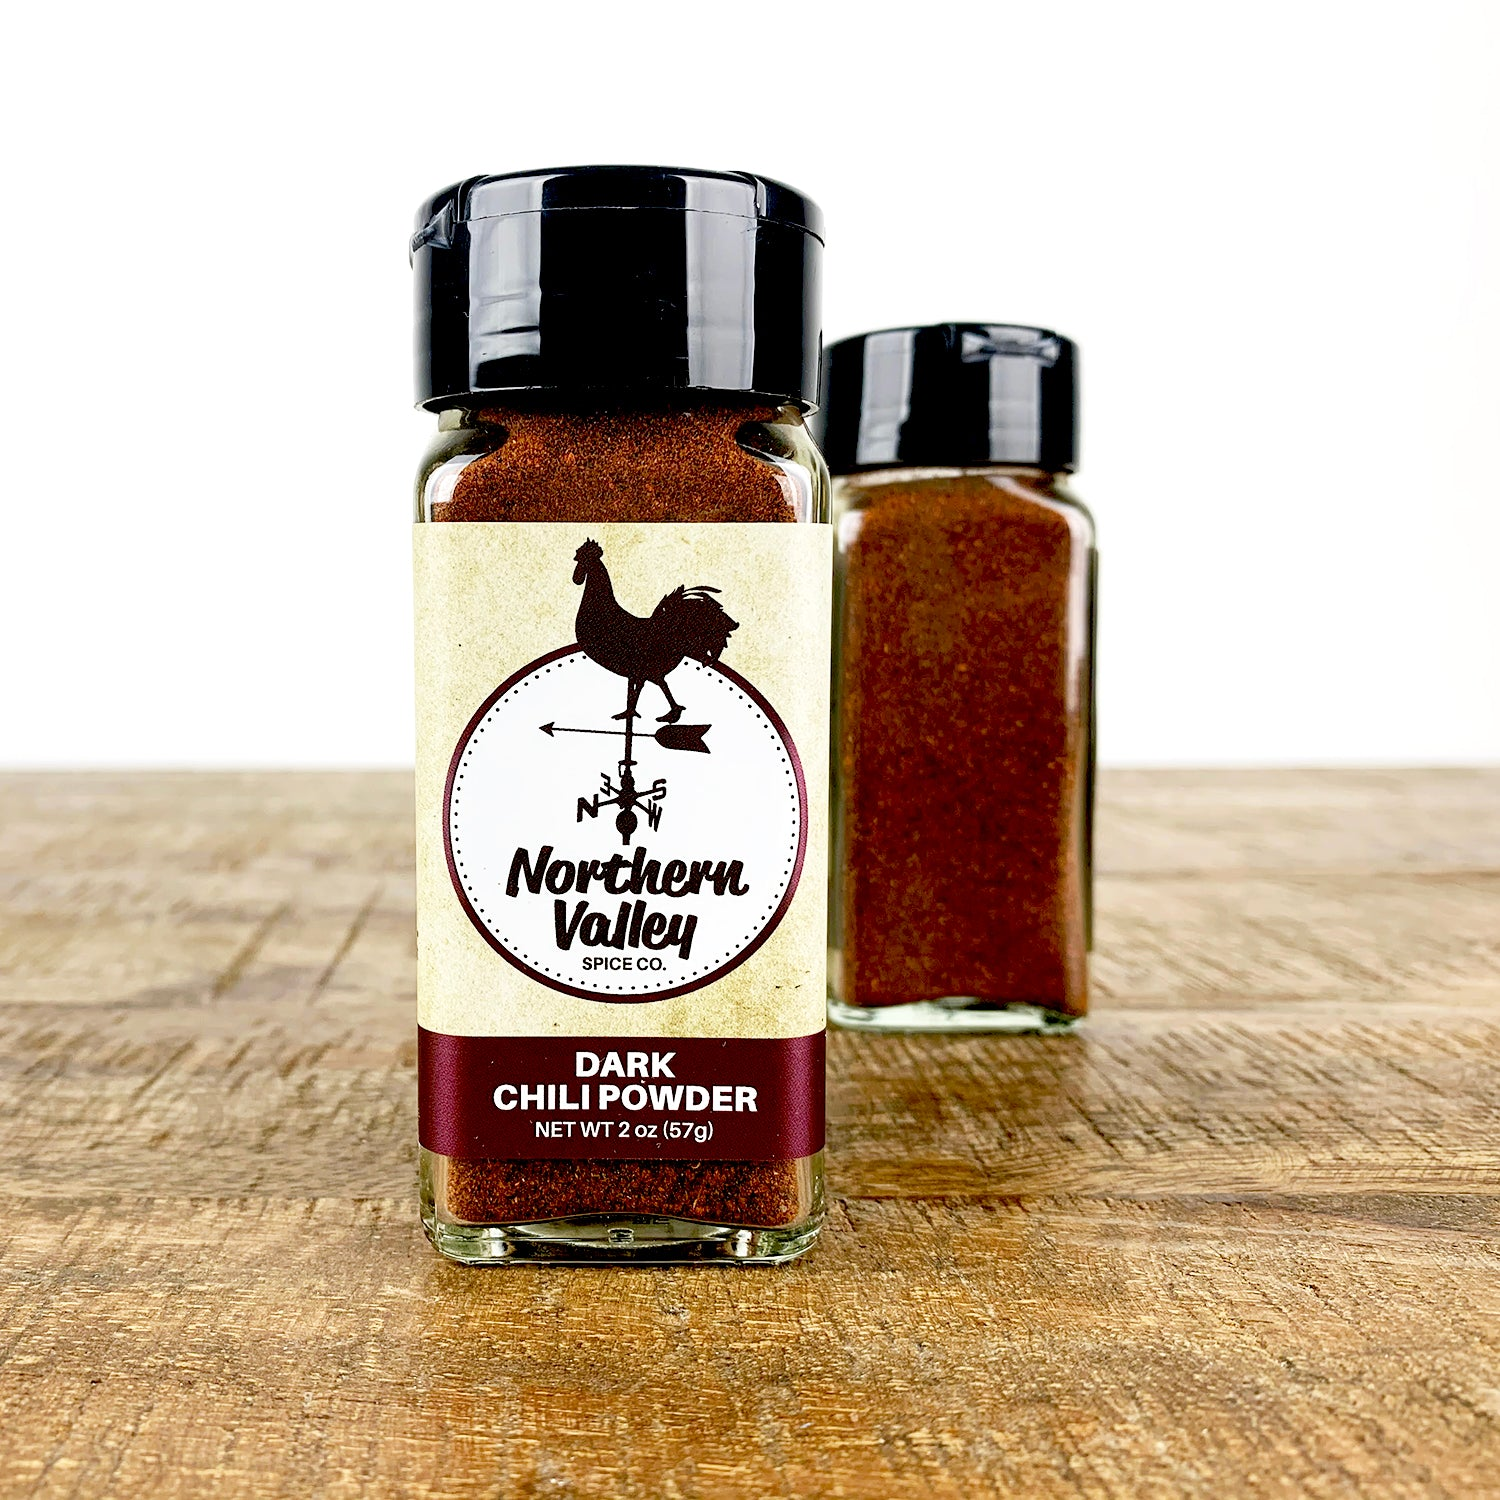 Dark Chili Powder | Spices | Northern Valley Spice Co.